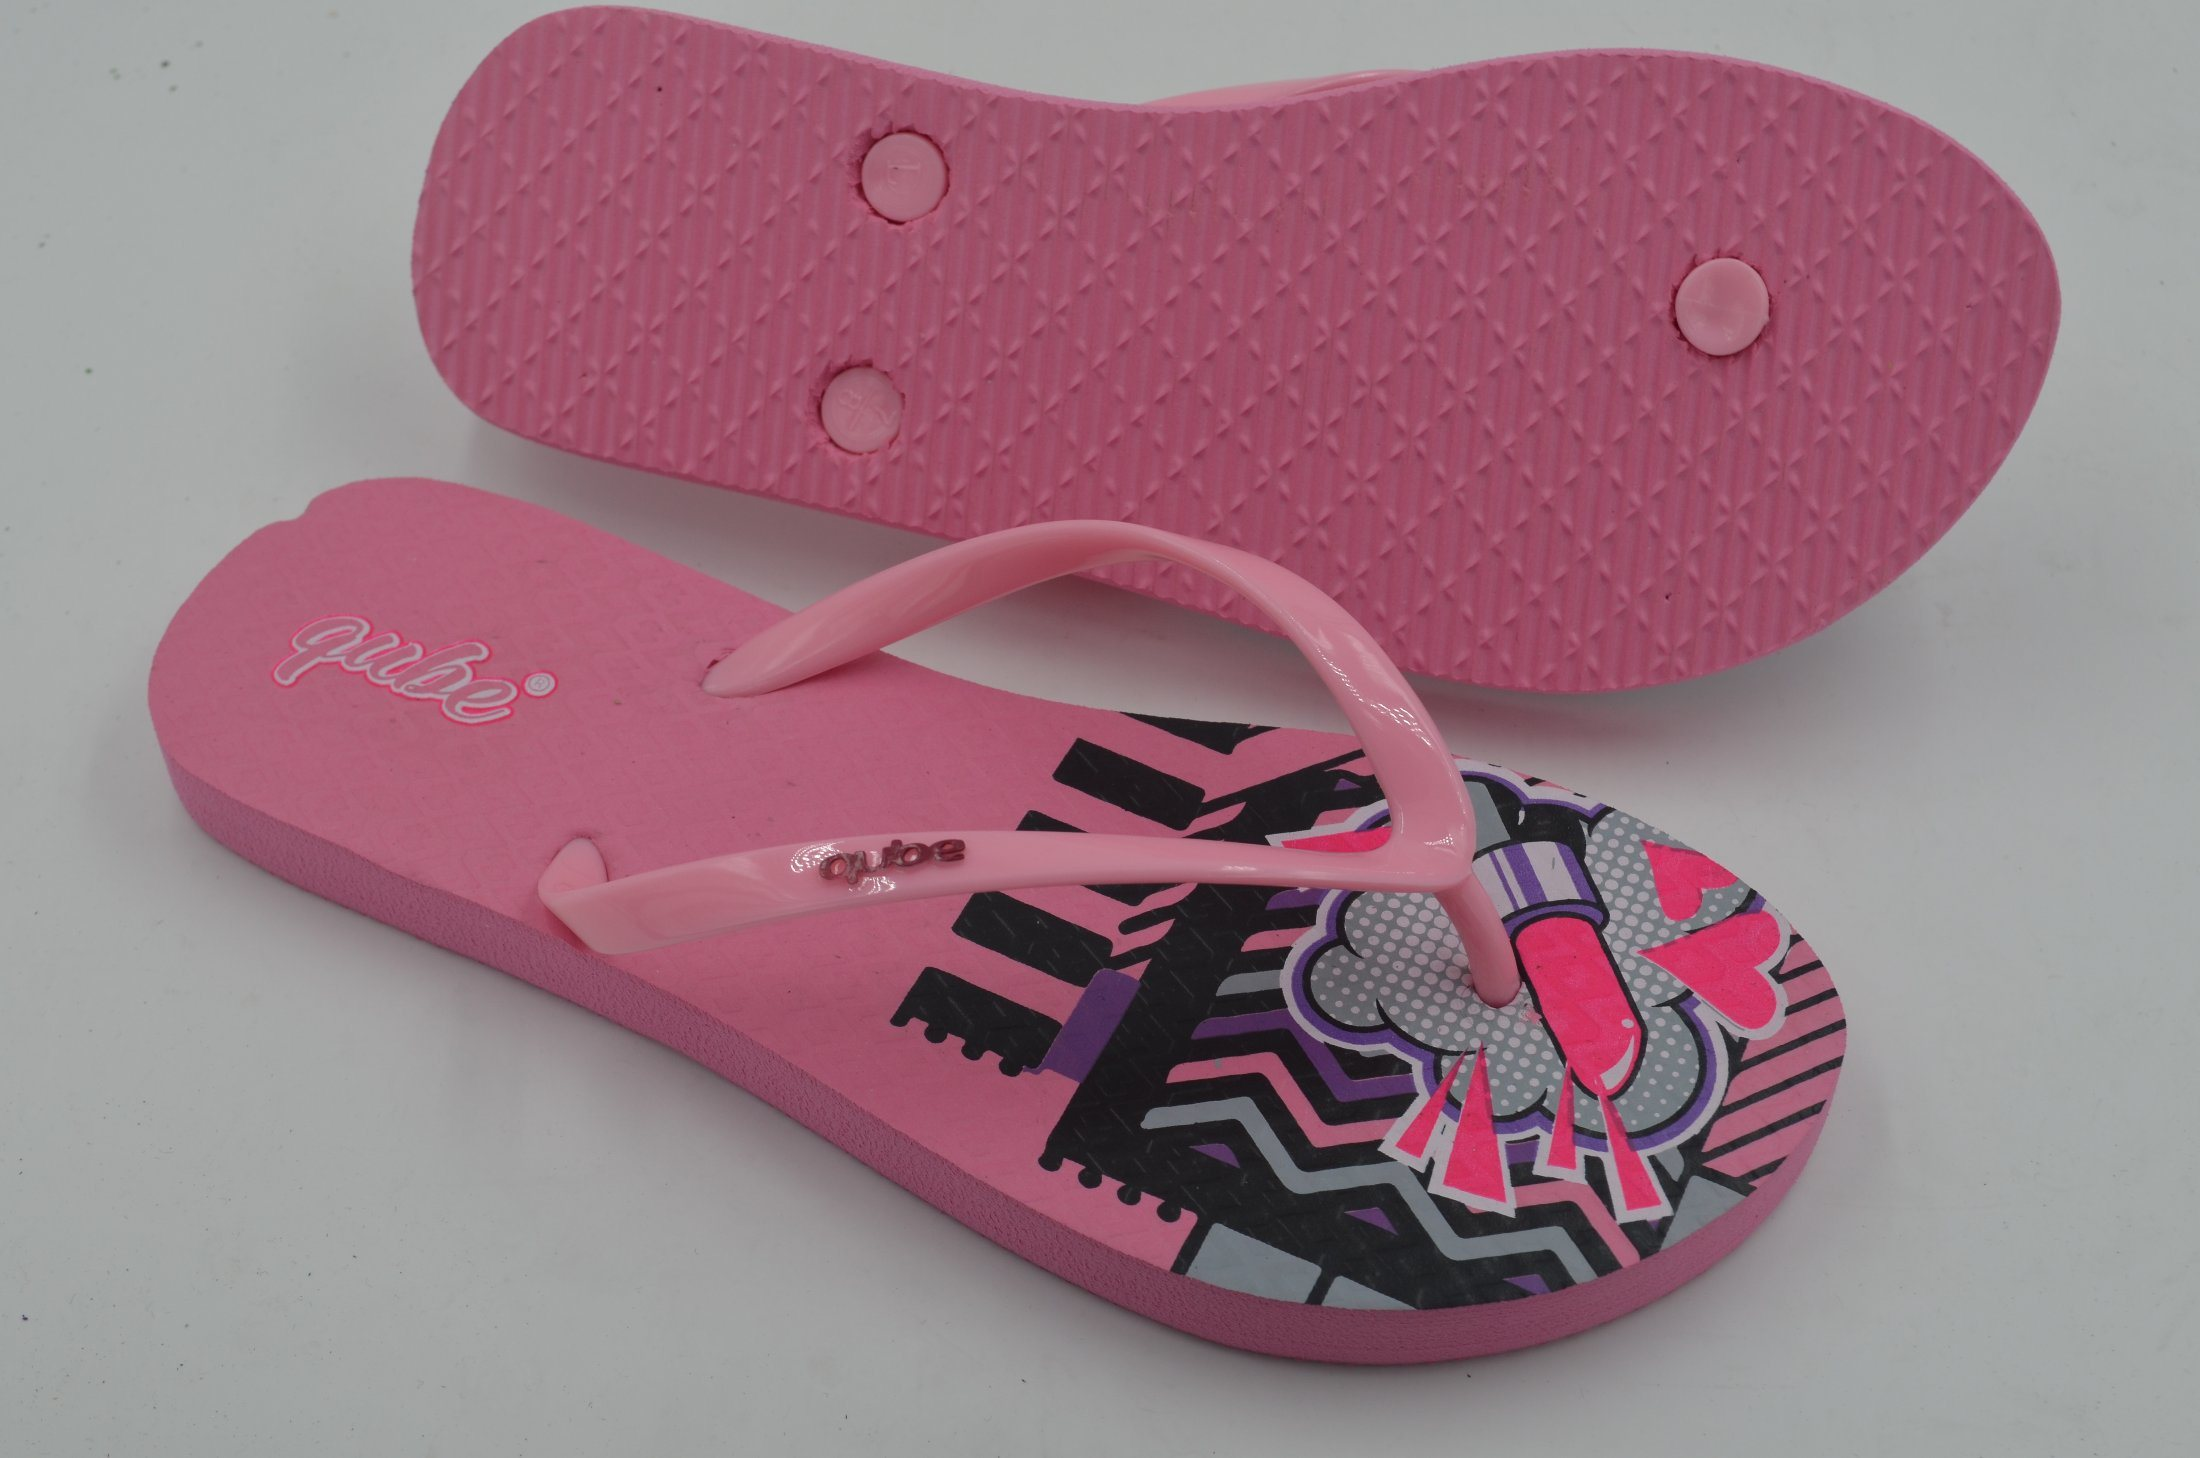 913f31b7ff4c China Cheap Wholesale Custom Non-Slip Comfortable Women Beach Flip Flops -  China Women Flipflops